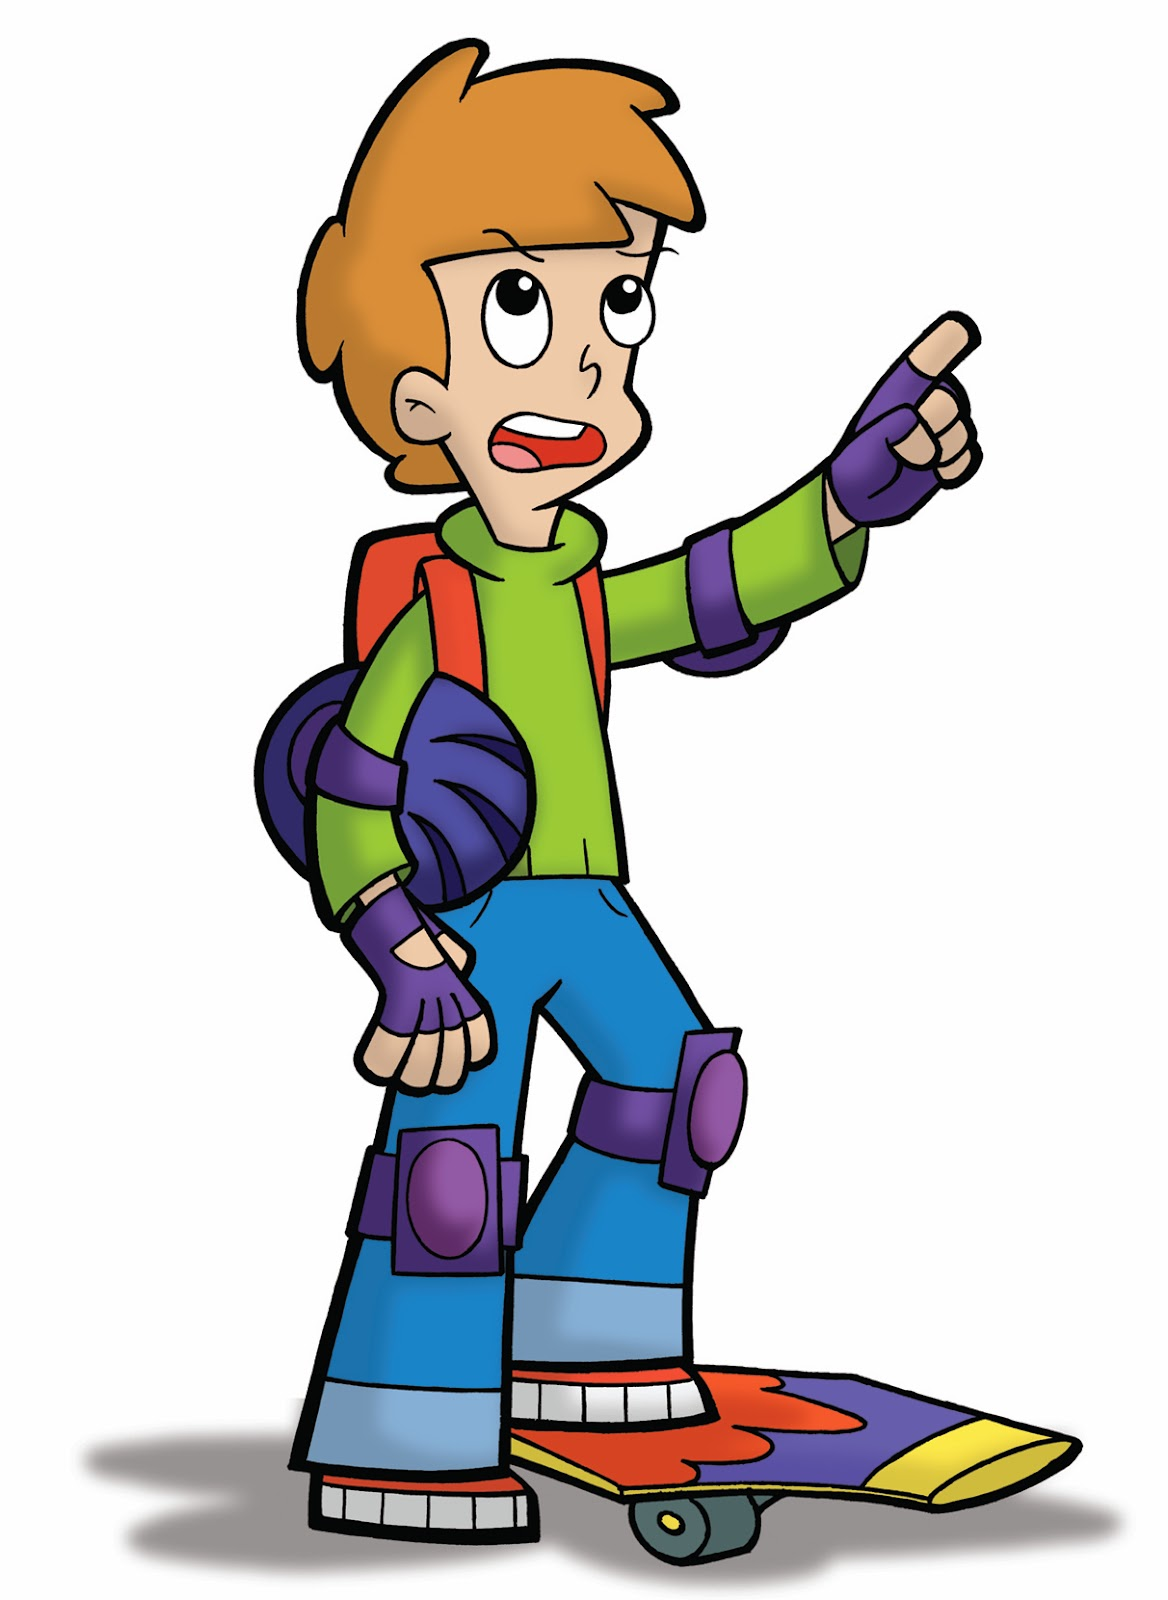 Cartoon Characters: Cyberchase character pictures